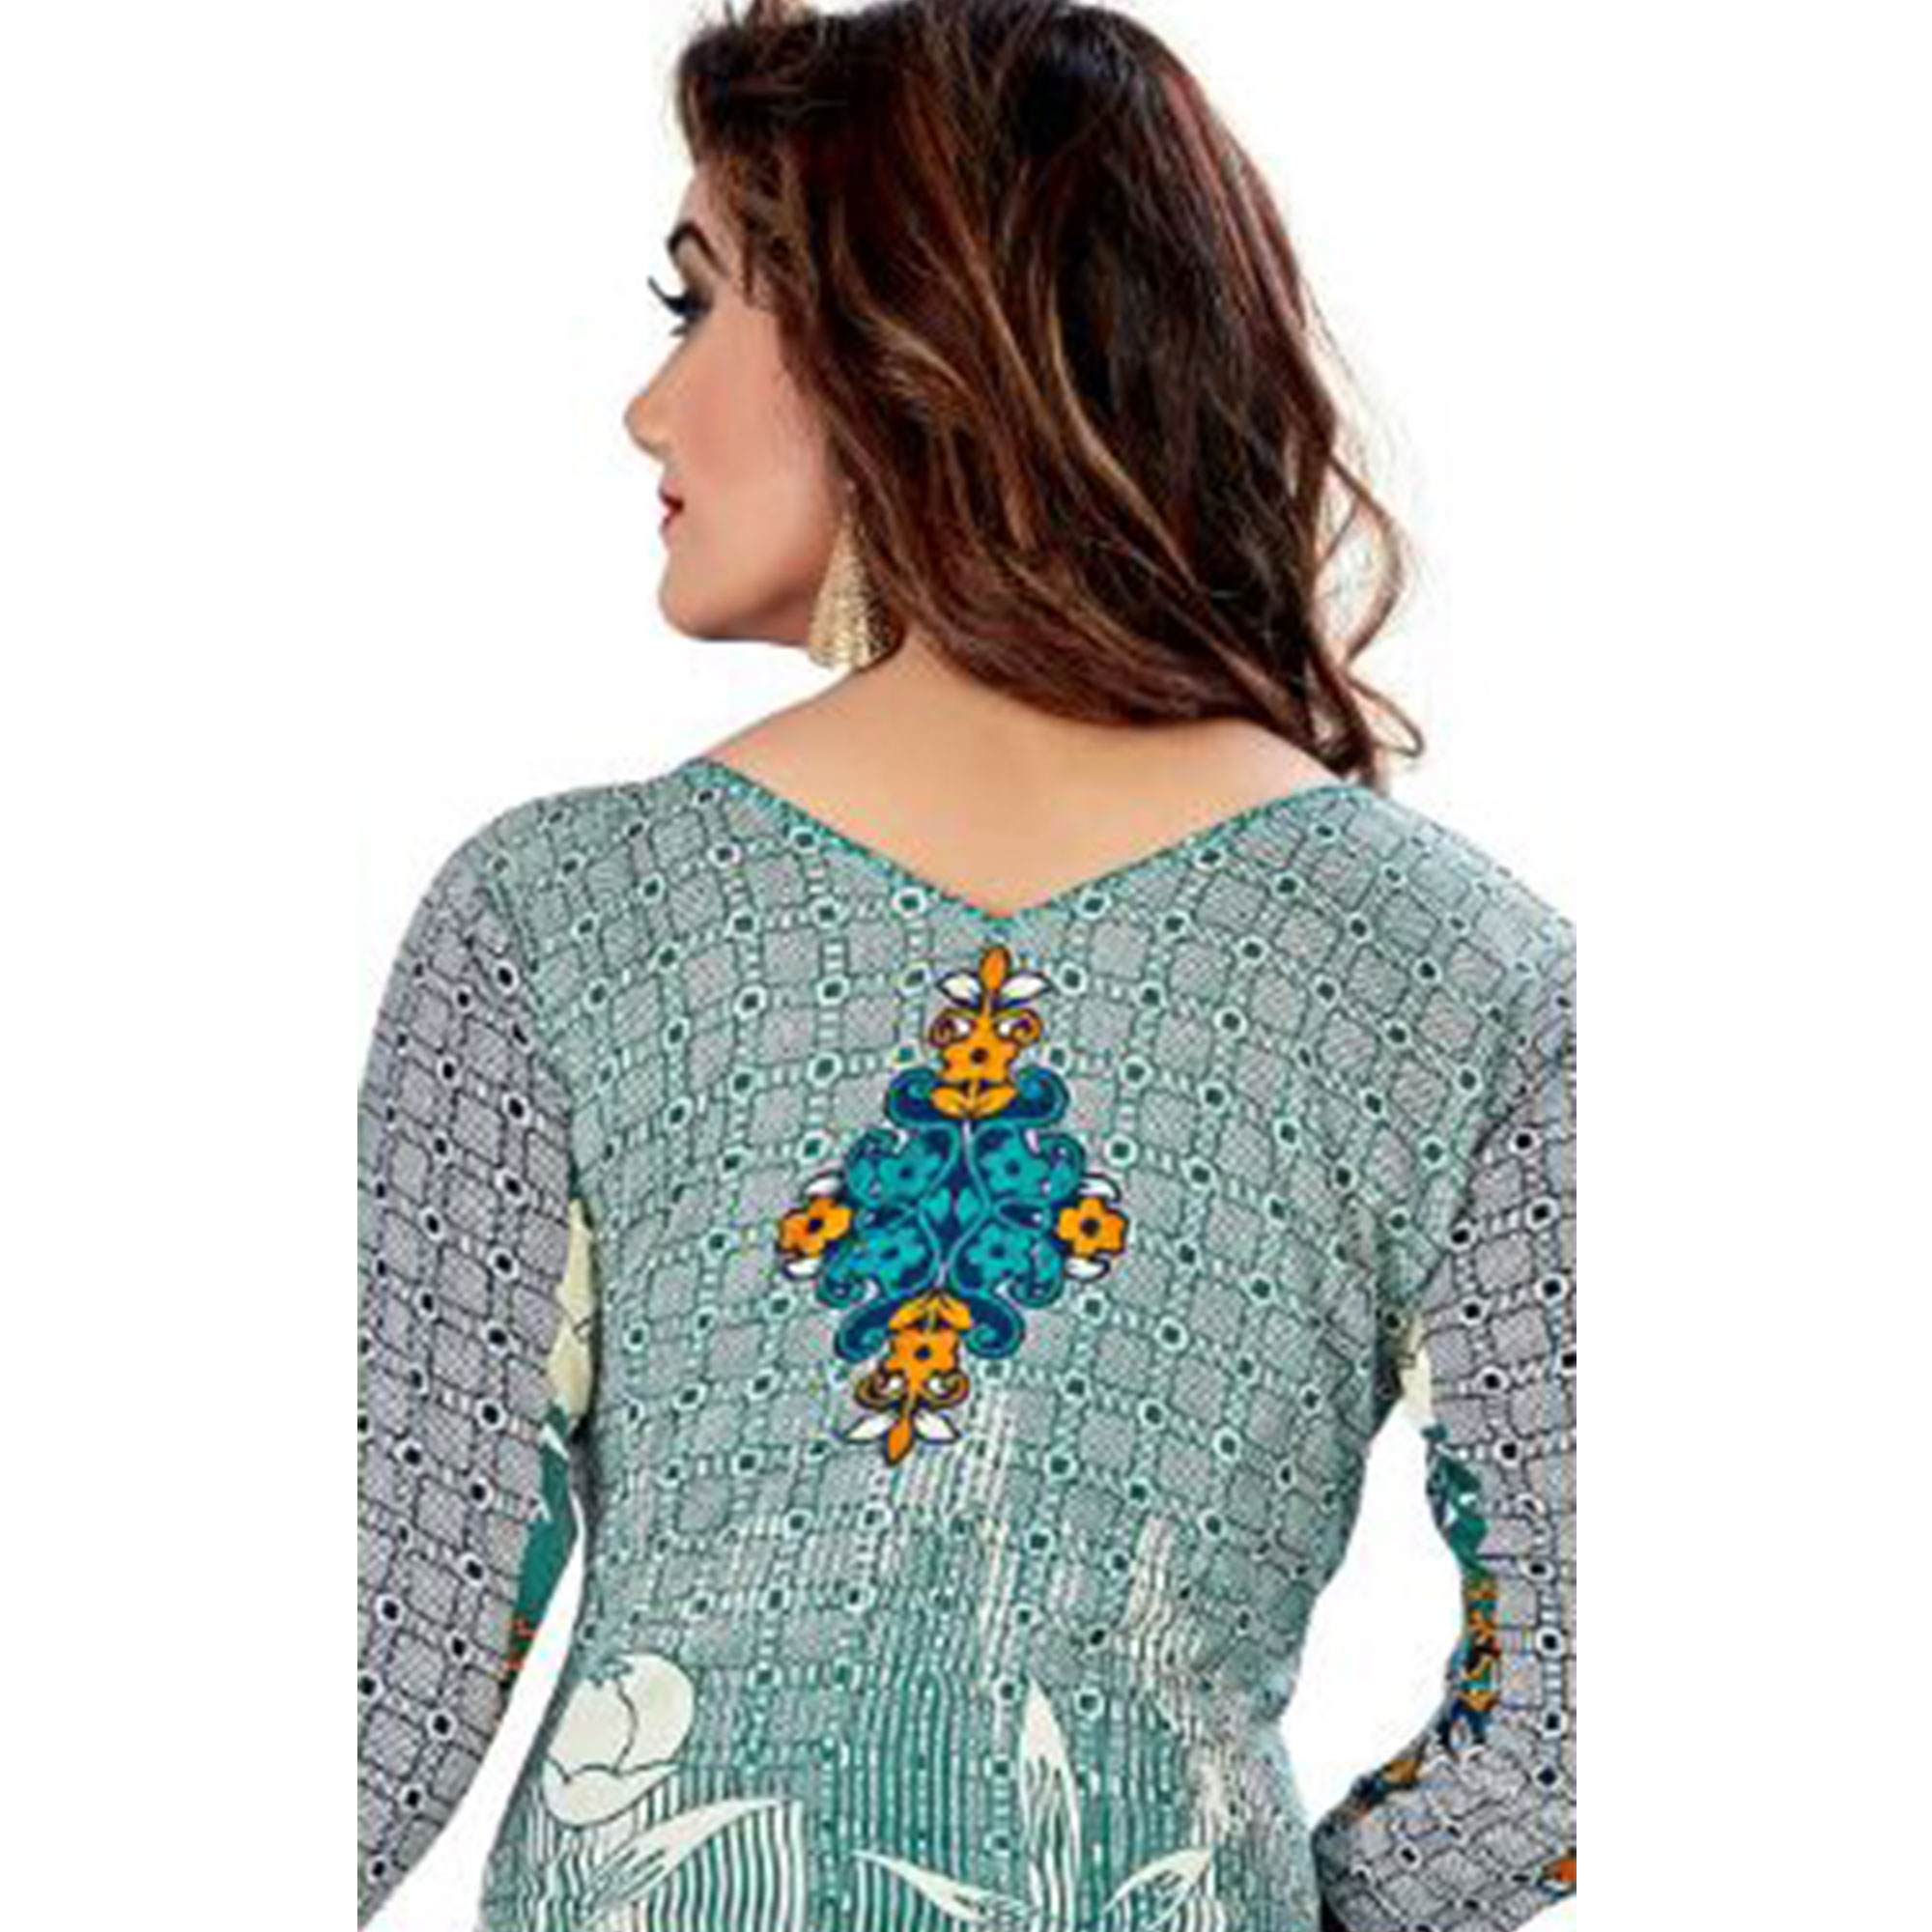 Preferable Sky Blue - Off White Colored Casual Wear Printed Crepe Salwar Suit